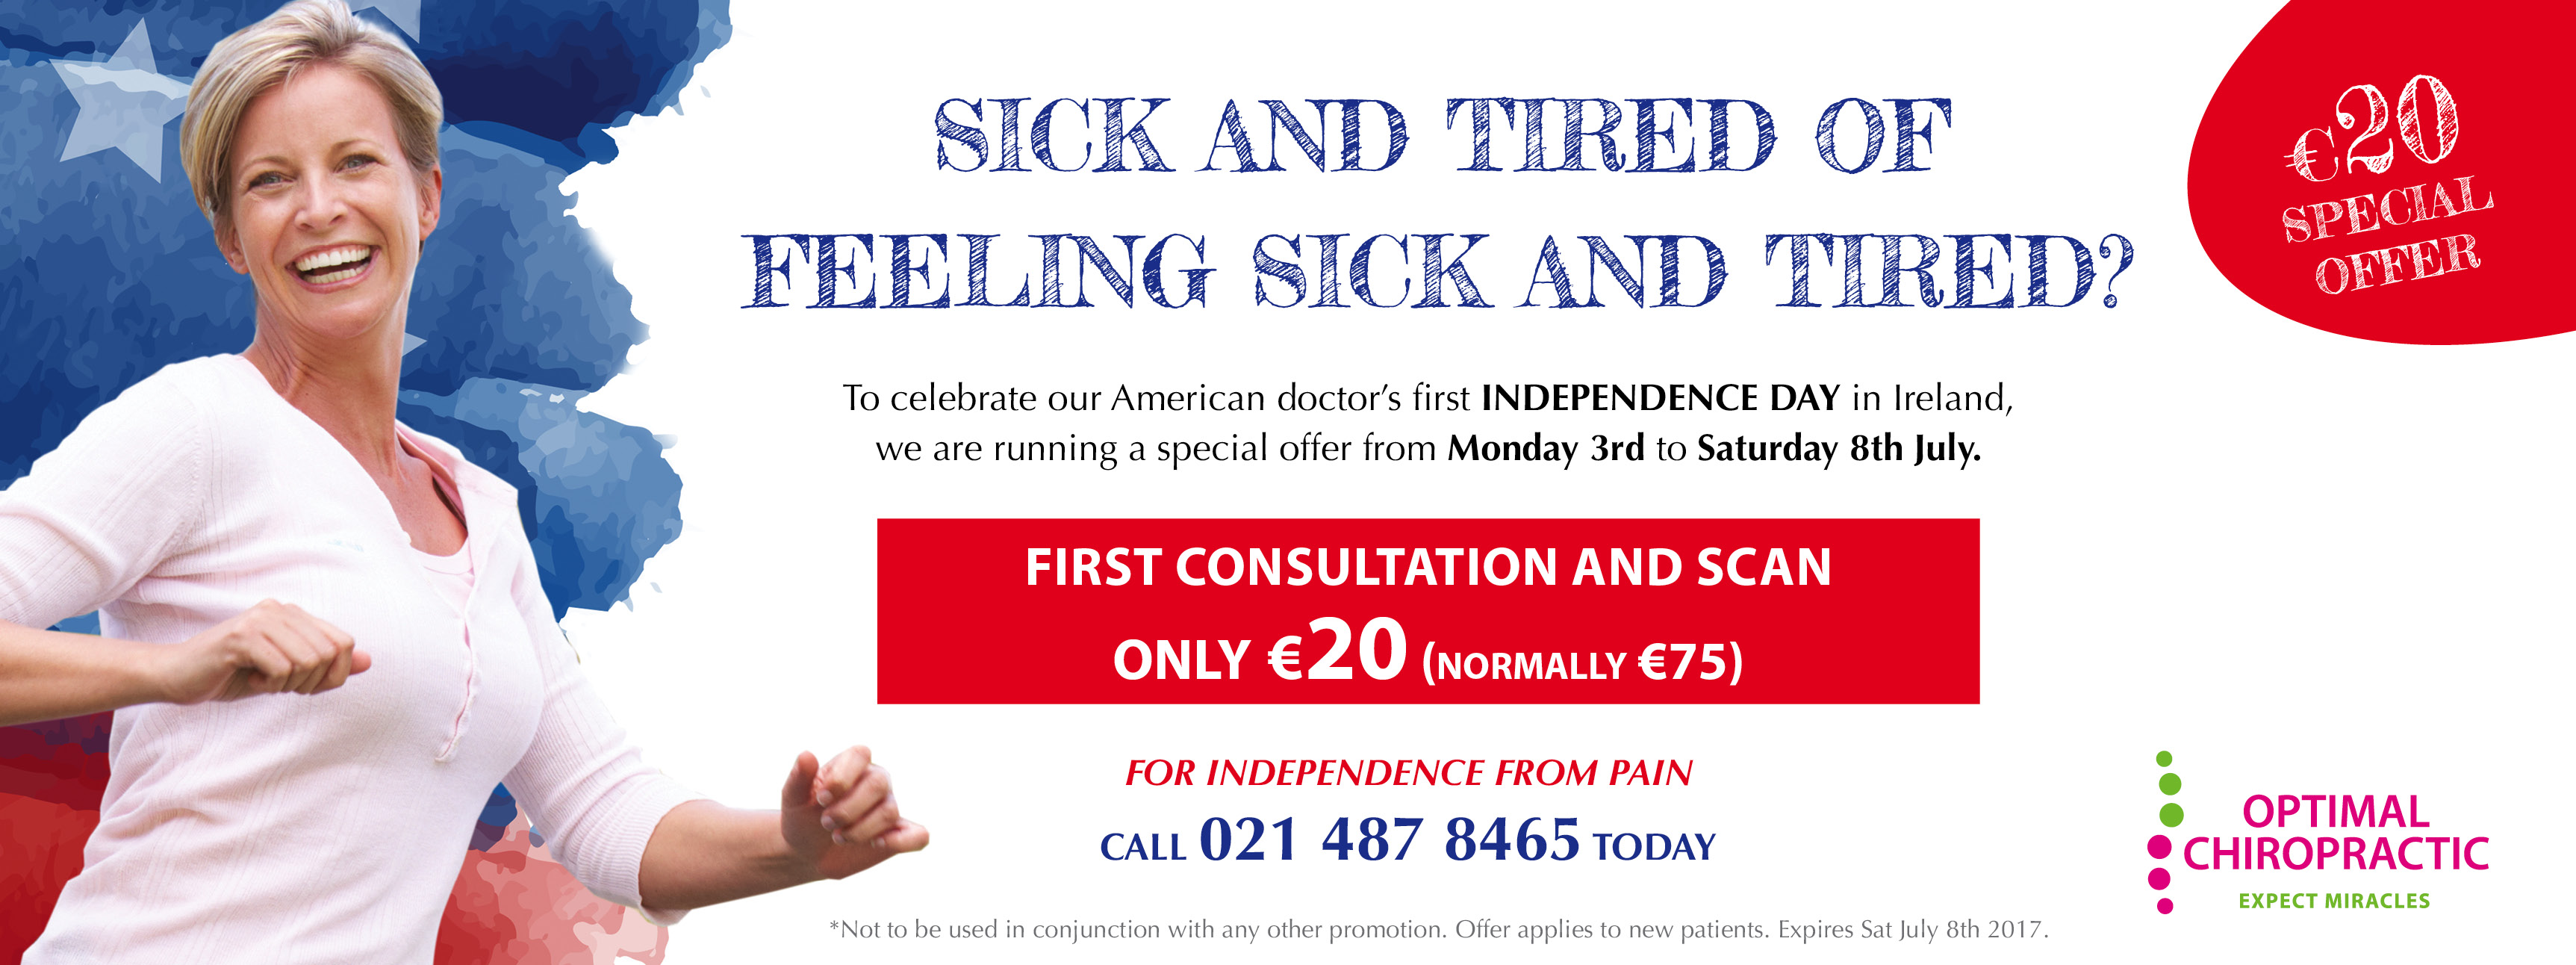 Independence from Pain Promotion - €20 for First consultation and scan